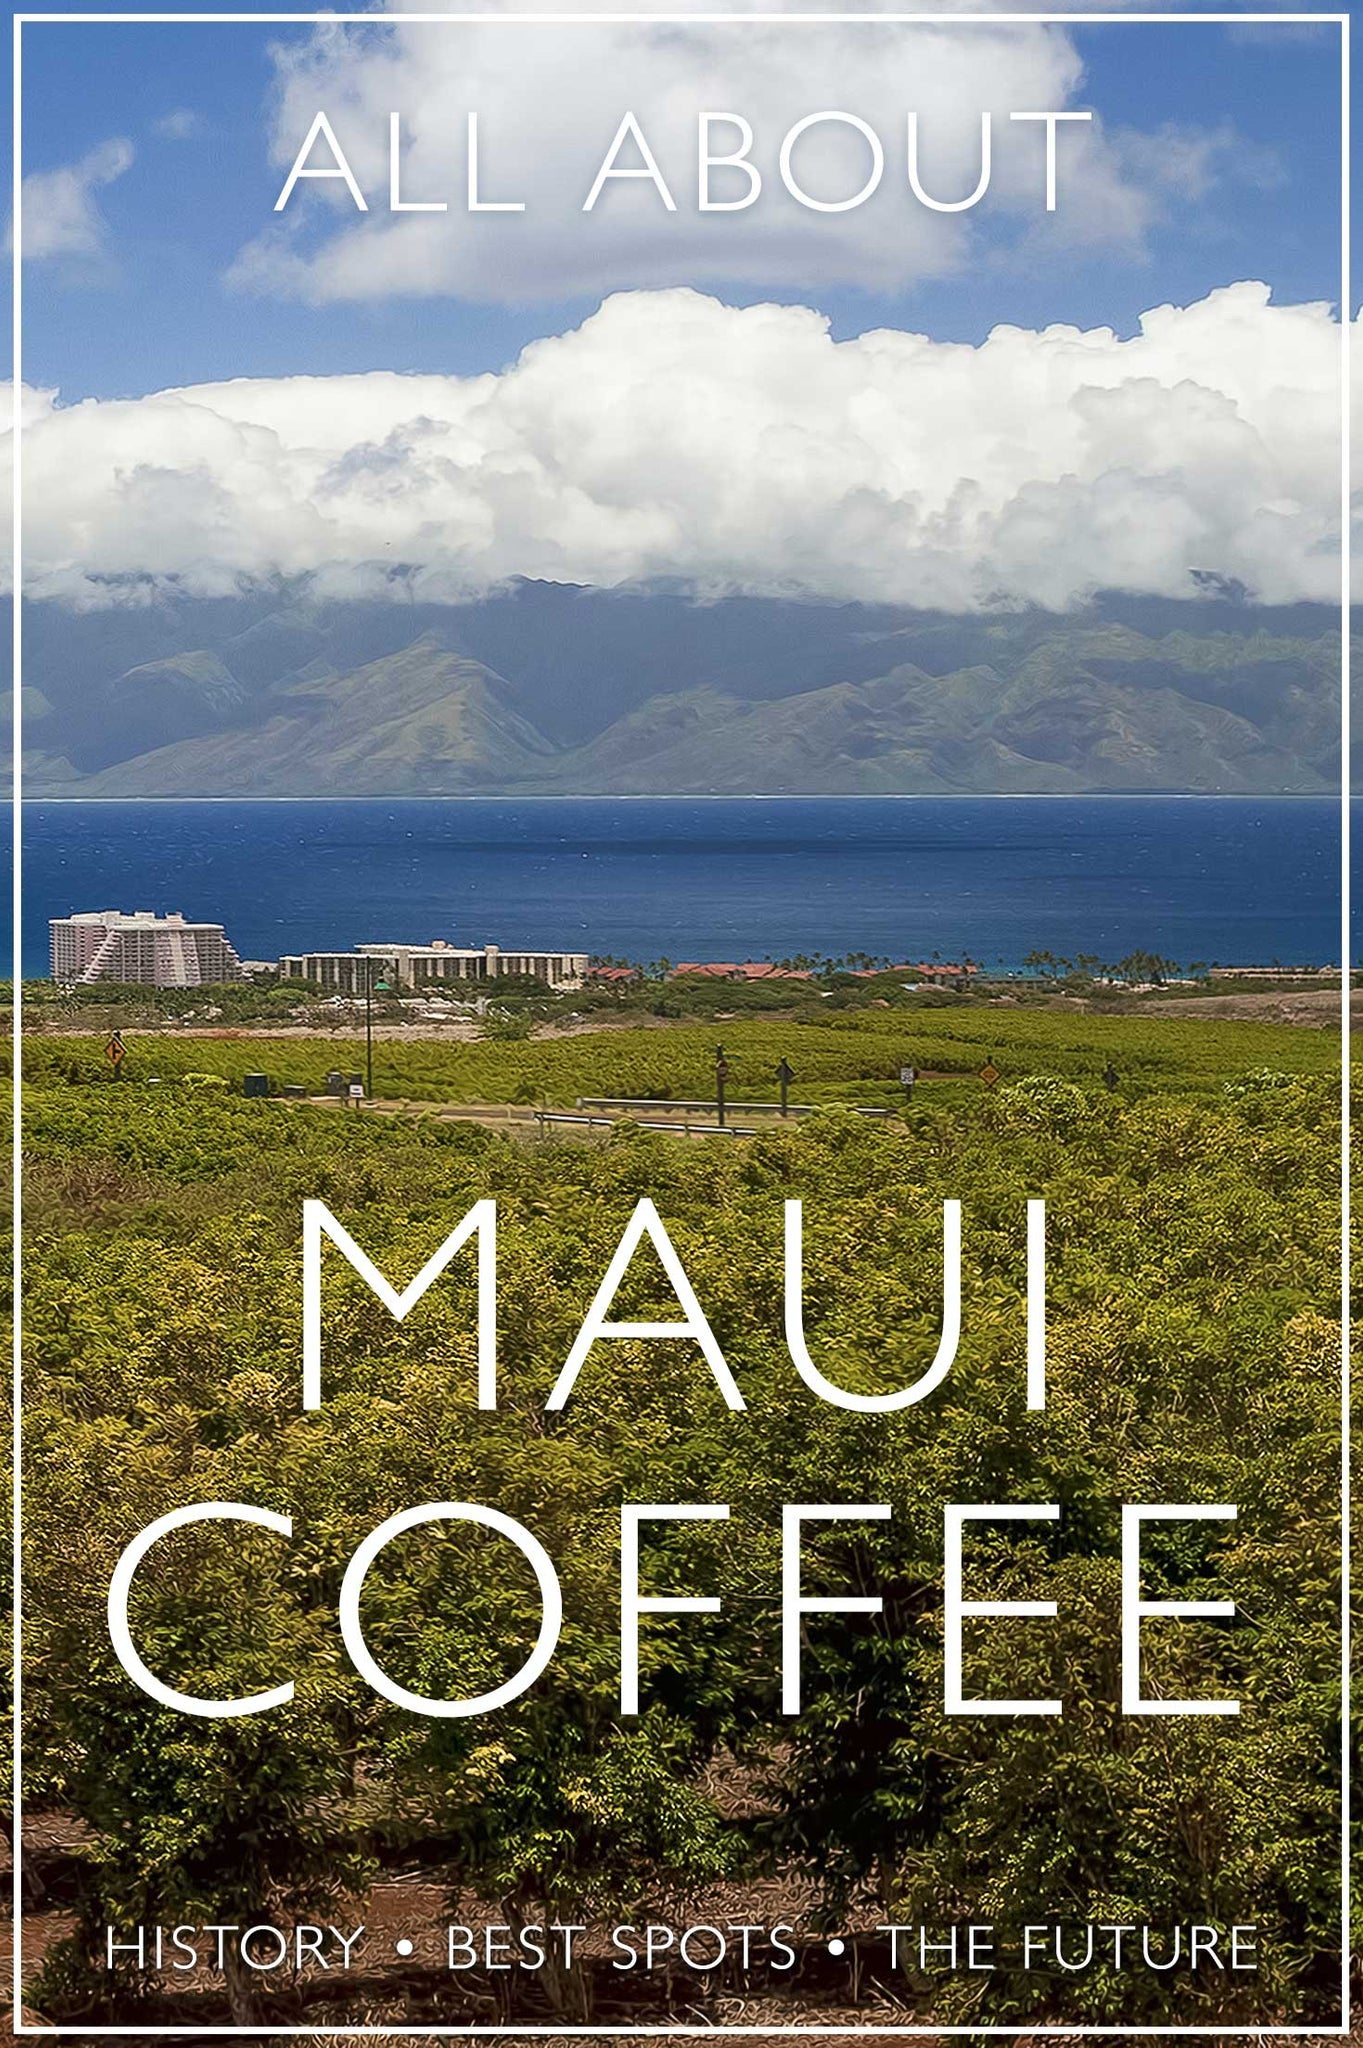 All About Maui Coffee